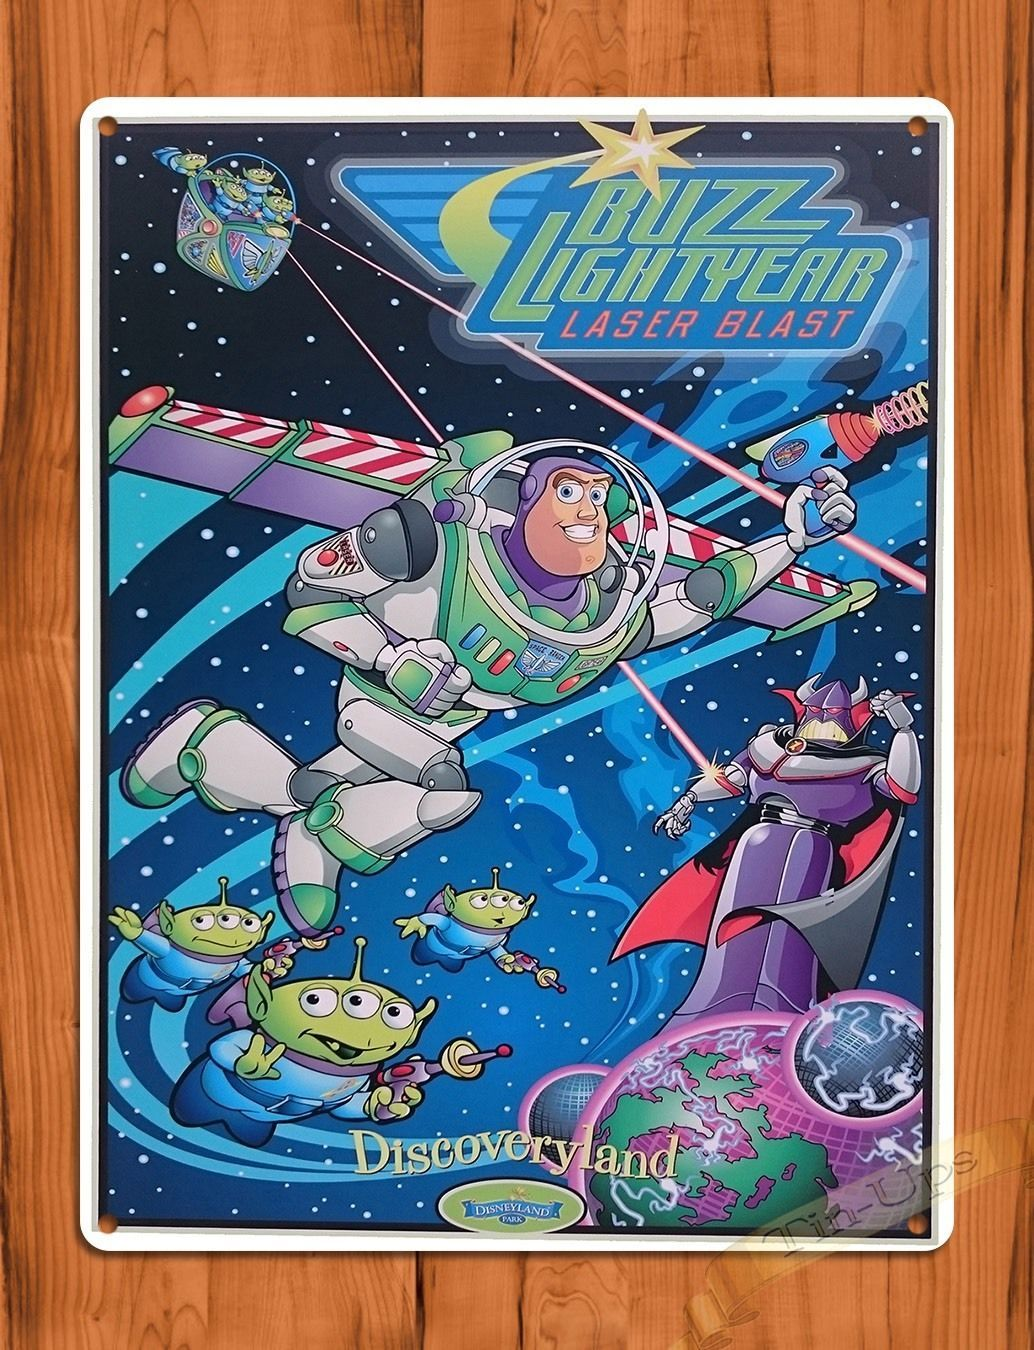 Disney Buzz Lightyear Poster I want you to join Space Rangers Vintage Disney Toy Story Attraction Posters Magic Kingdom Disneyland Disney World Home Decor Wall Art